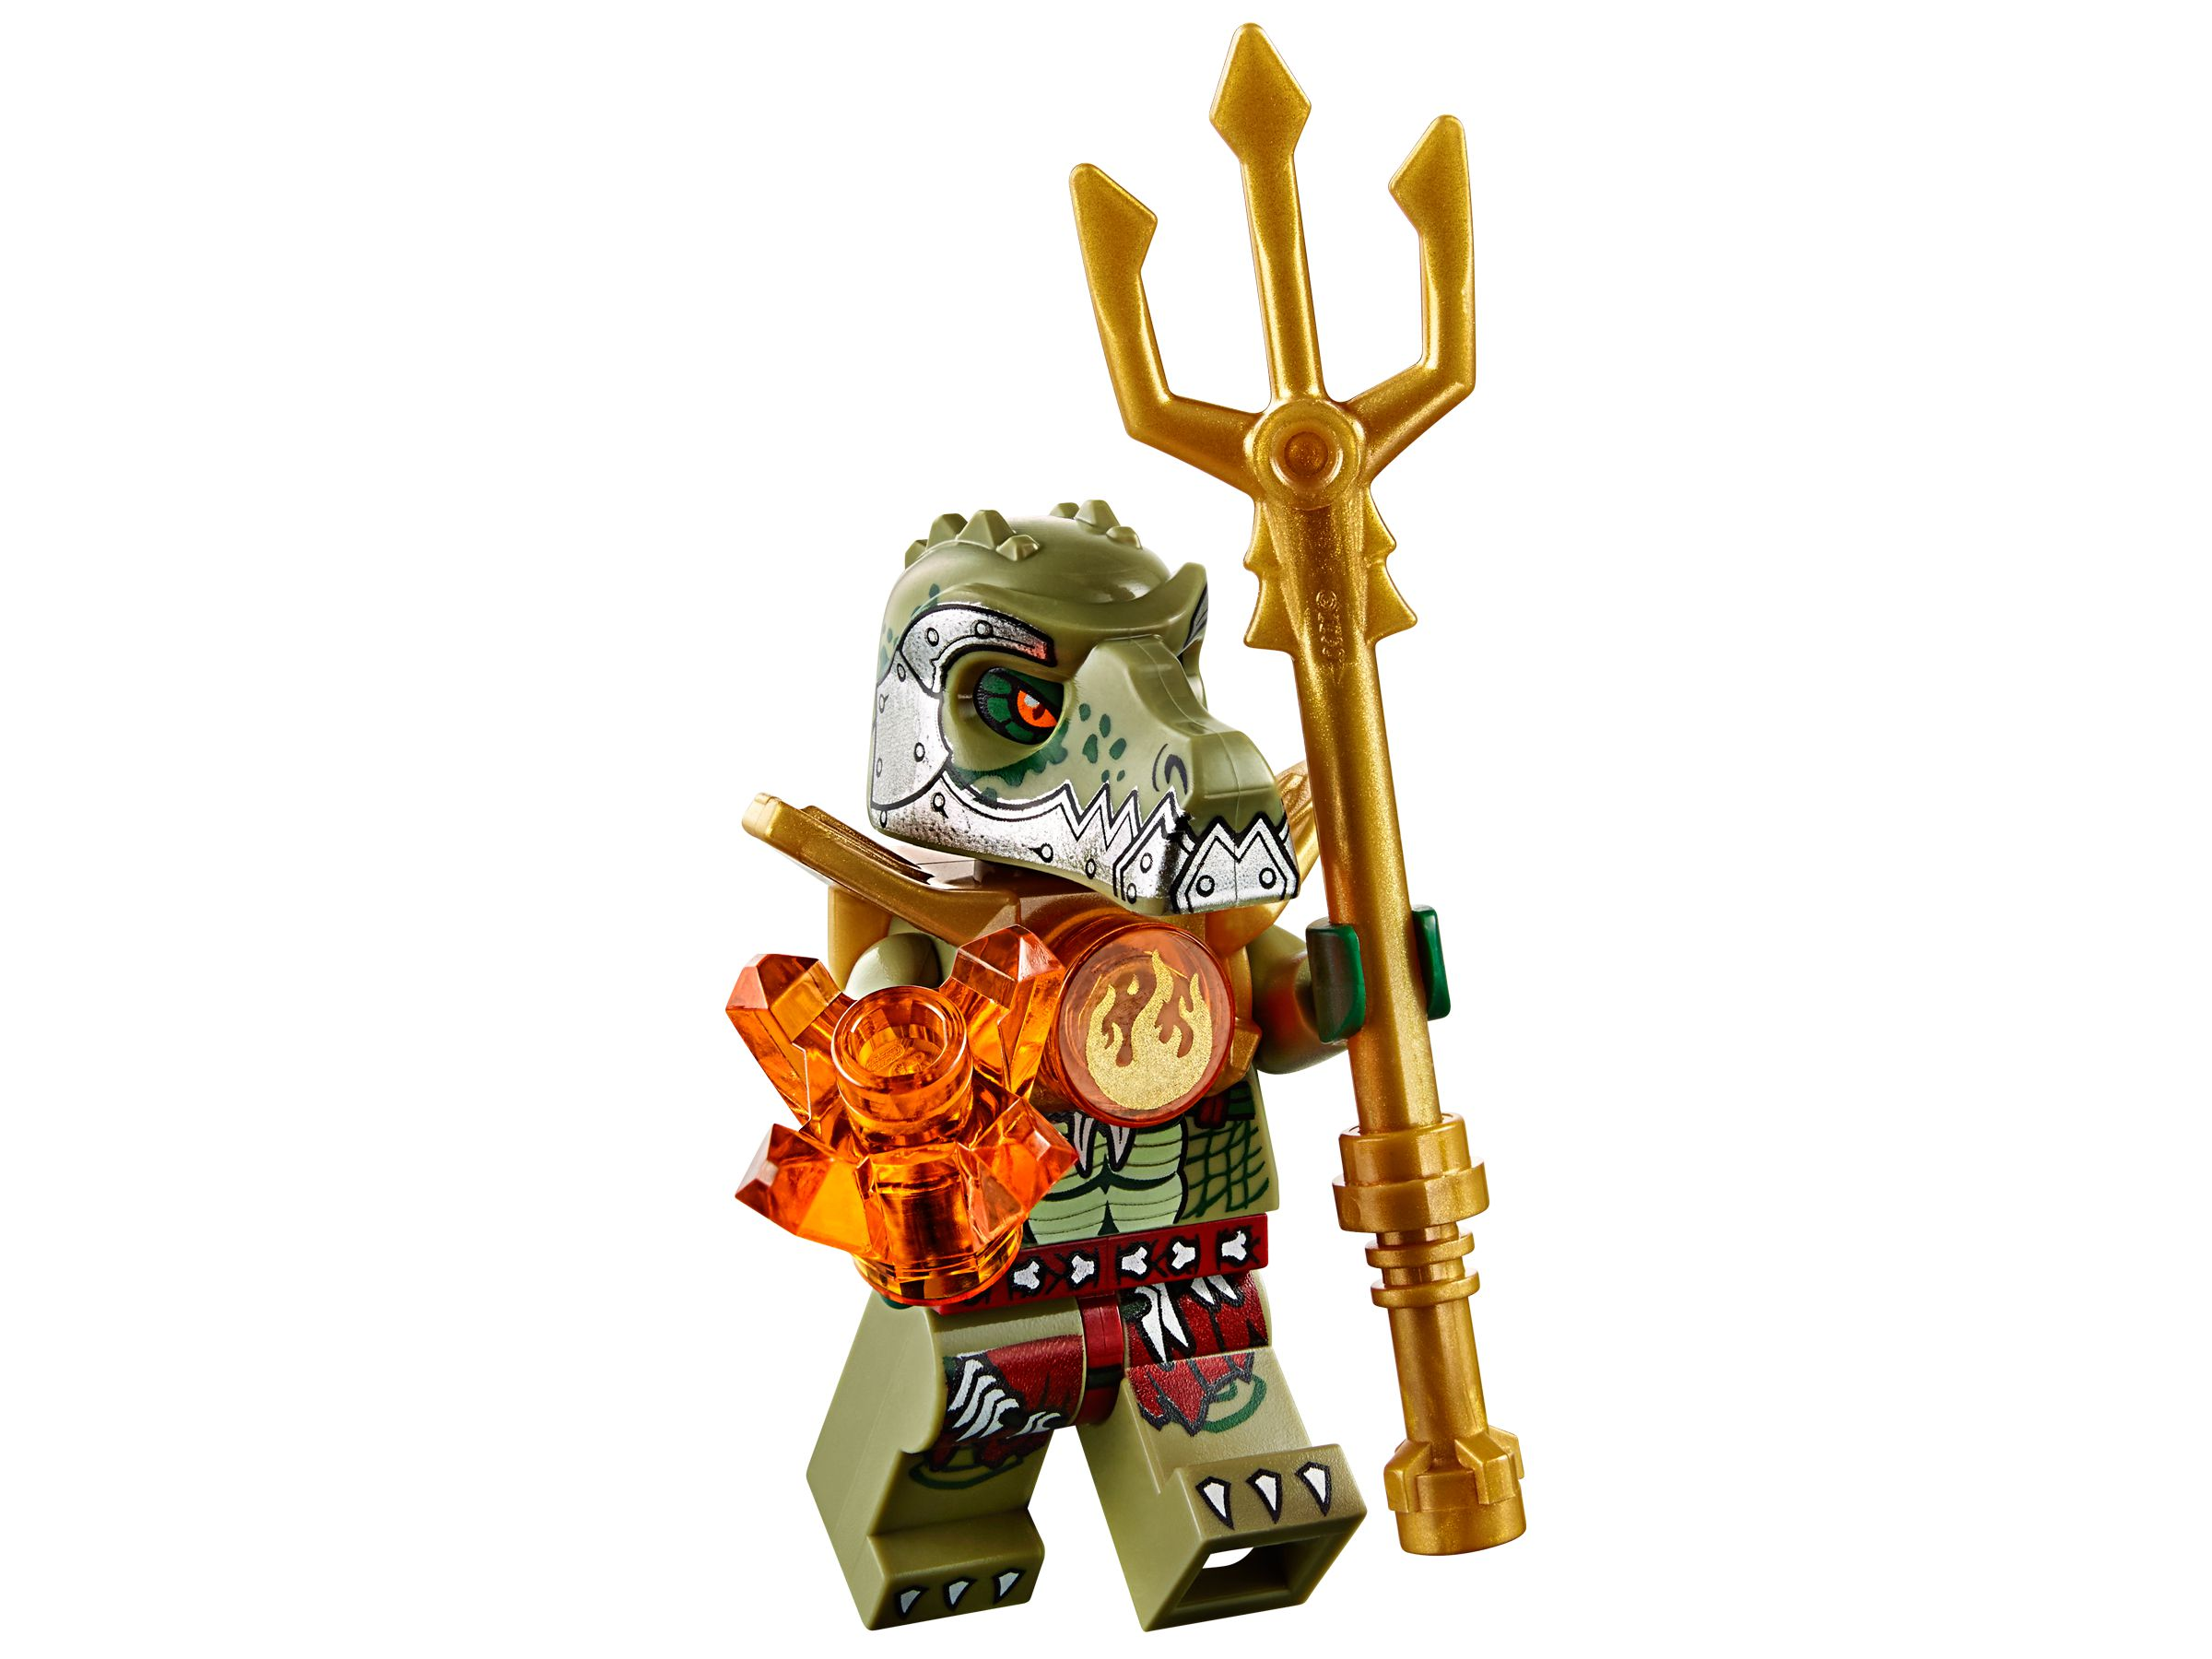 LEGO Legends Of Chima 70231 Krokodilstamm-Set LEGO_70231_alt2.jpg